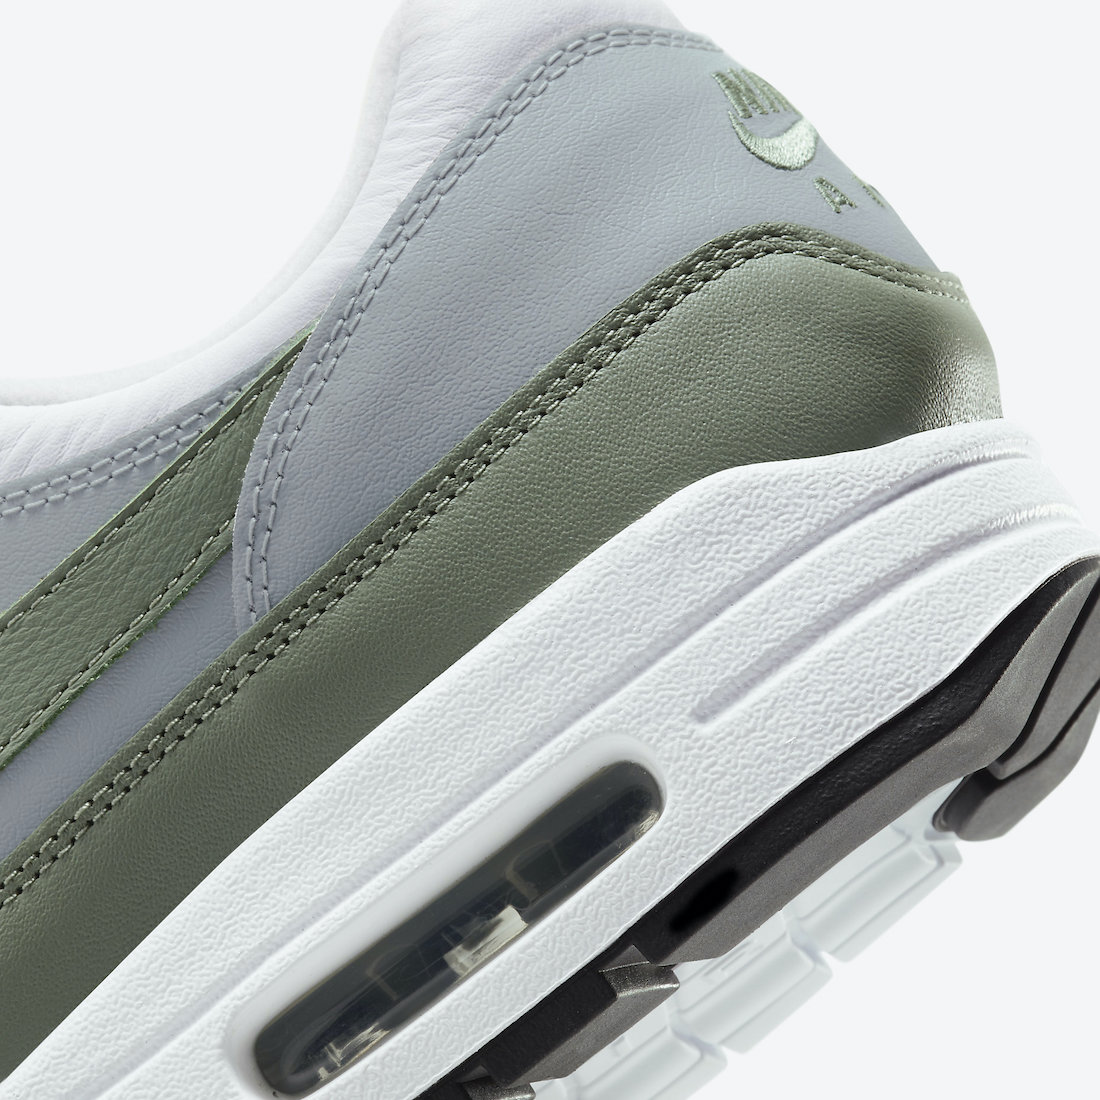 Nike-Air-Max-1-Spiral-Sage-DB5074-100-Release-Date-7